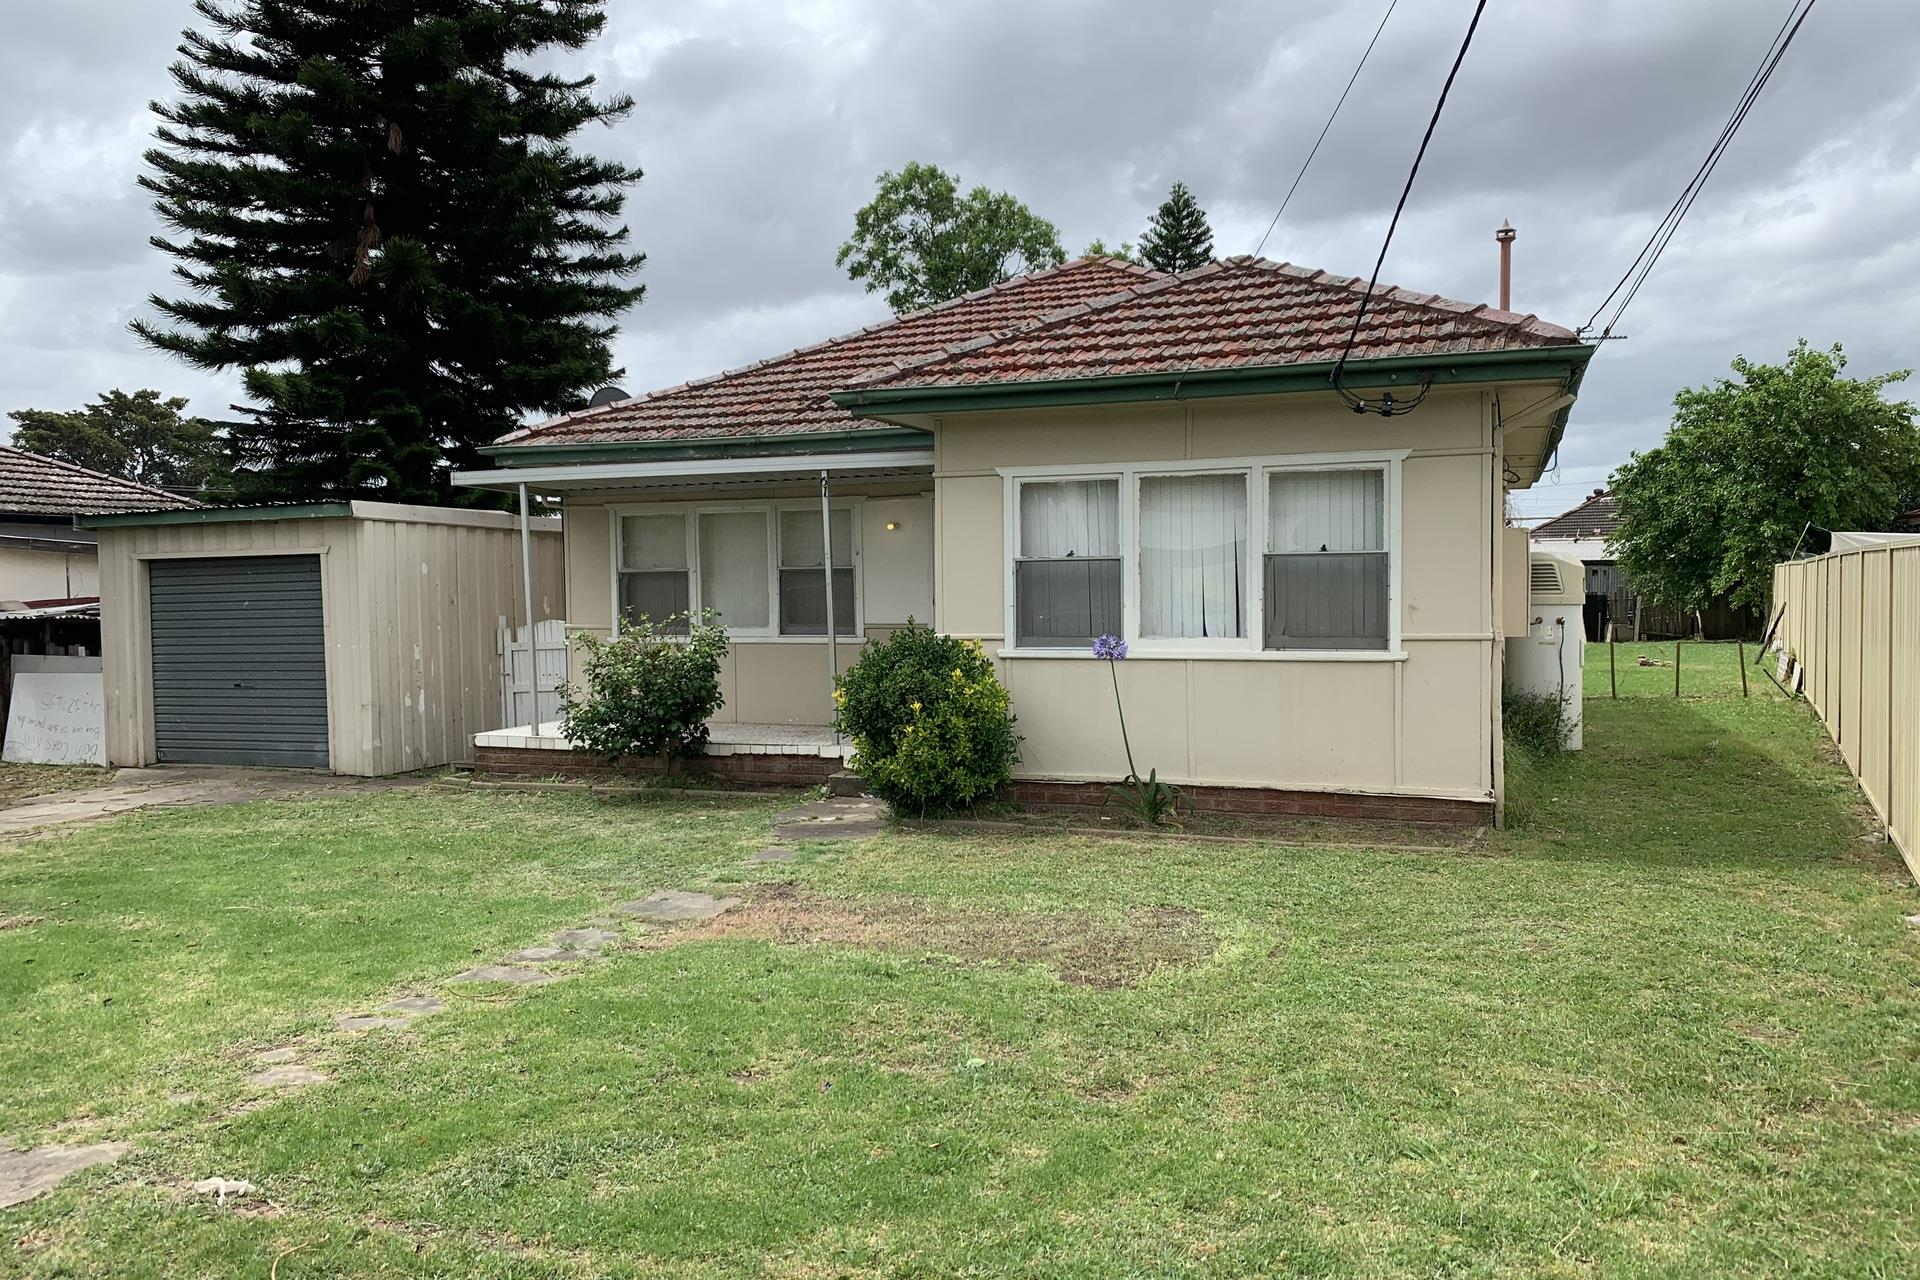 61 Passfield St, Liverpool, NSW 2170